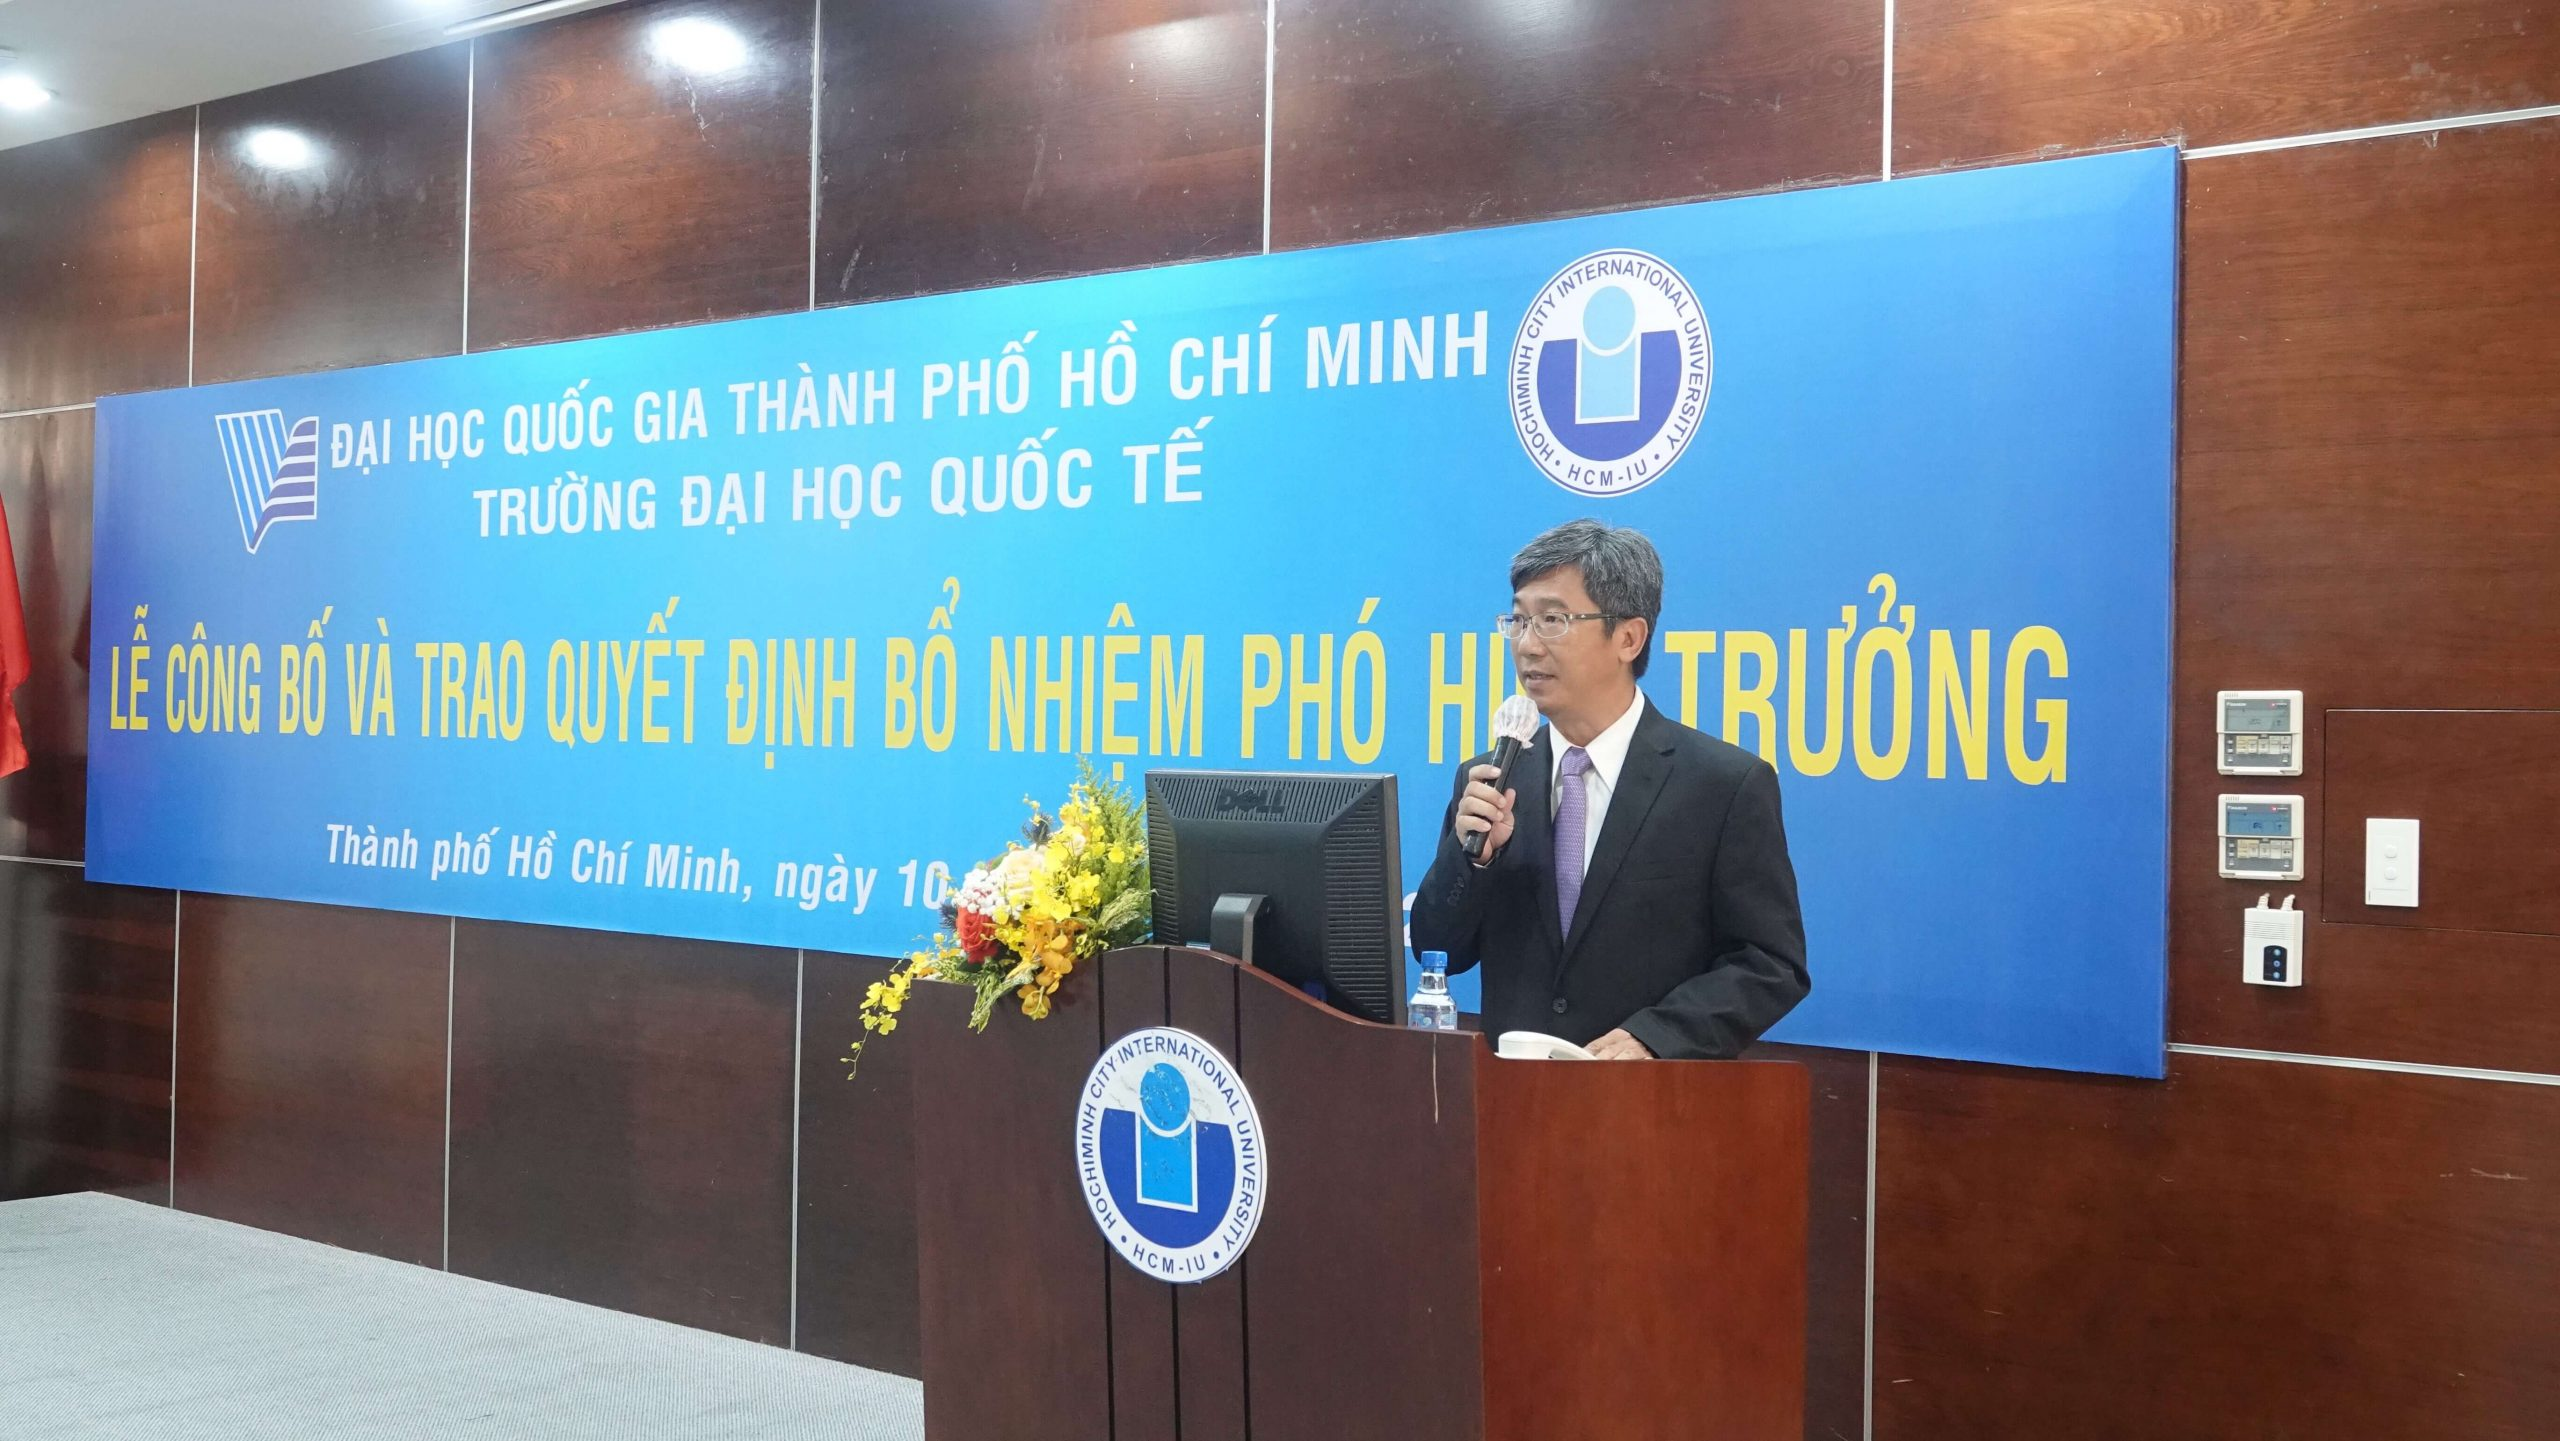 INTERNATIONAL UNIVERSITY WELCOMES NEW VICE RECTOR